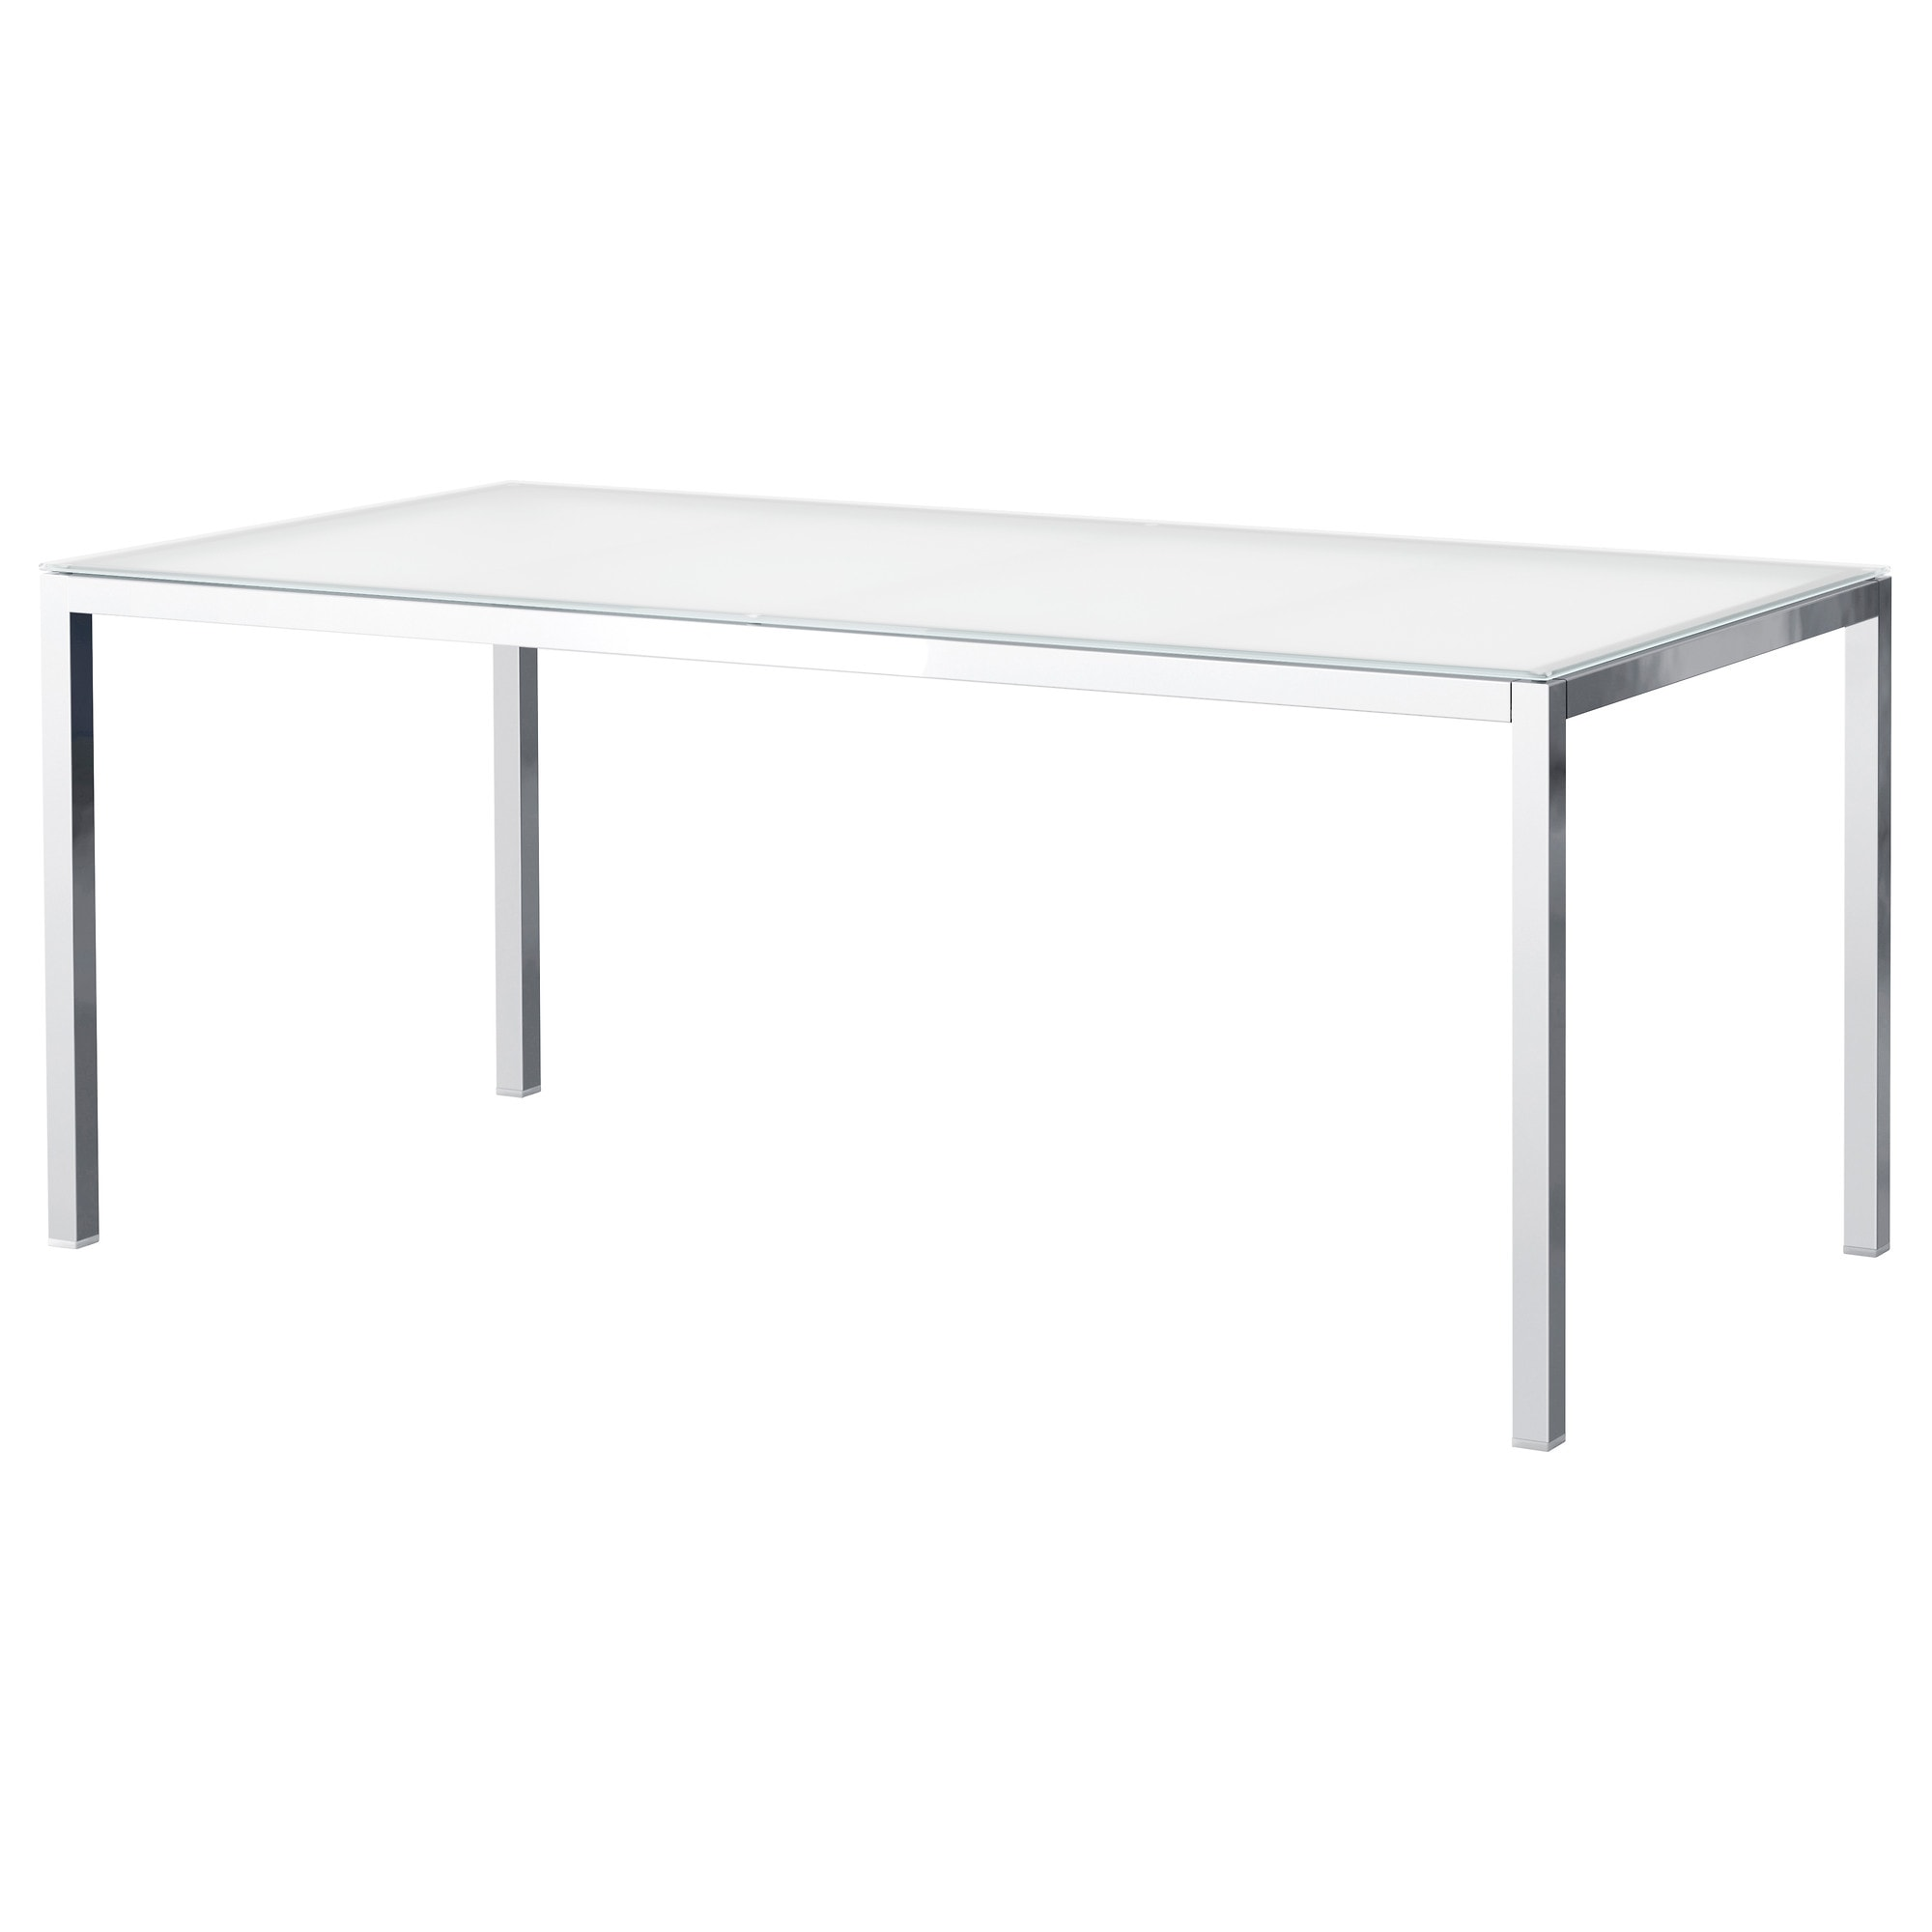 Table en verre salle a manger ikea table de lit for Table a manger ikea